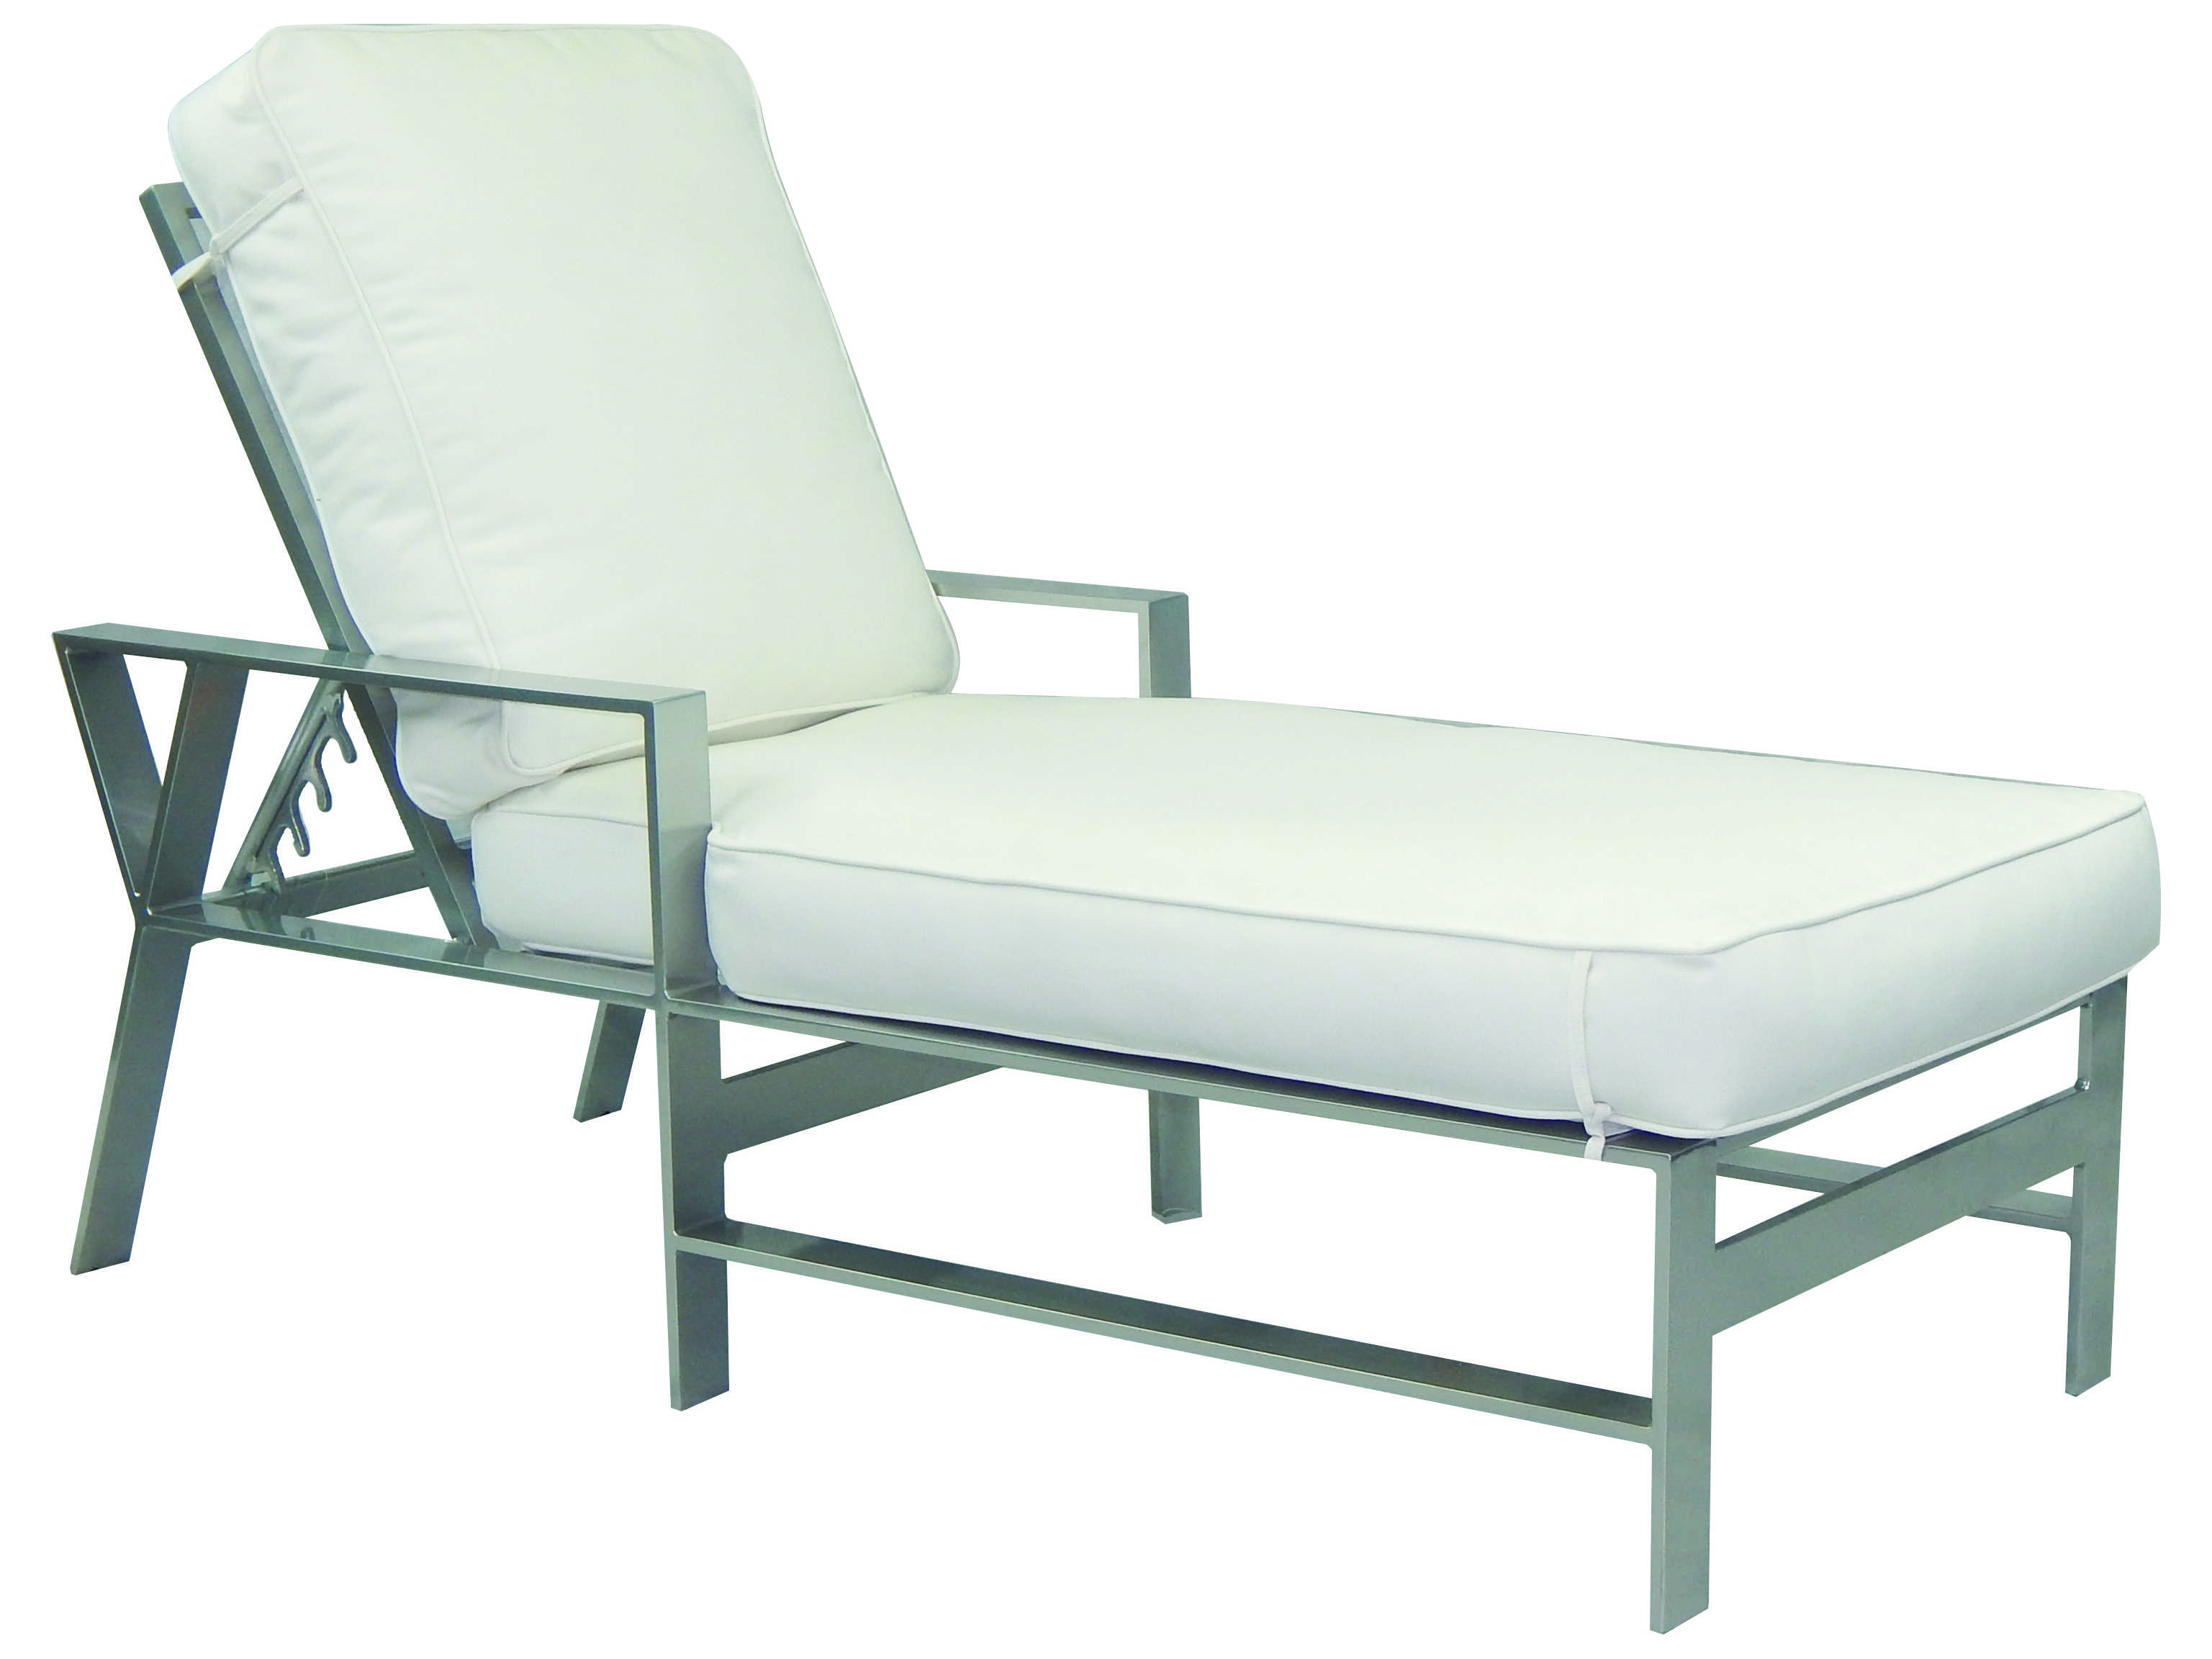 Castelle trento cushion dining cast aluminum adjustable for Aluminum chaise lounge with wheels